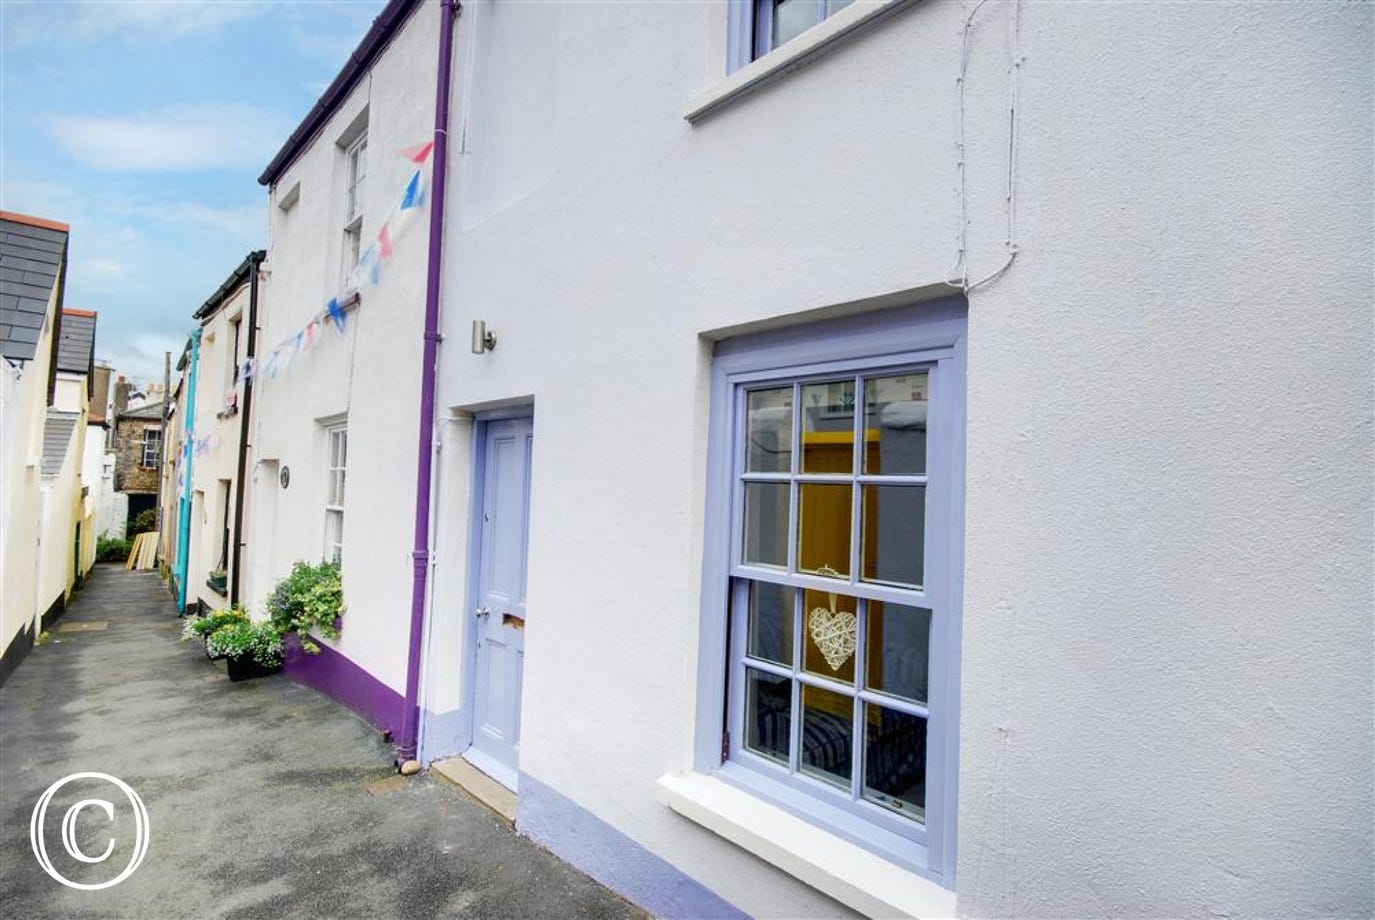 This delightful character cottage is located in a peaceful narrow lane just 200 yards from the quayside of the picturesque village of Appledore